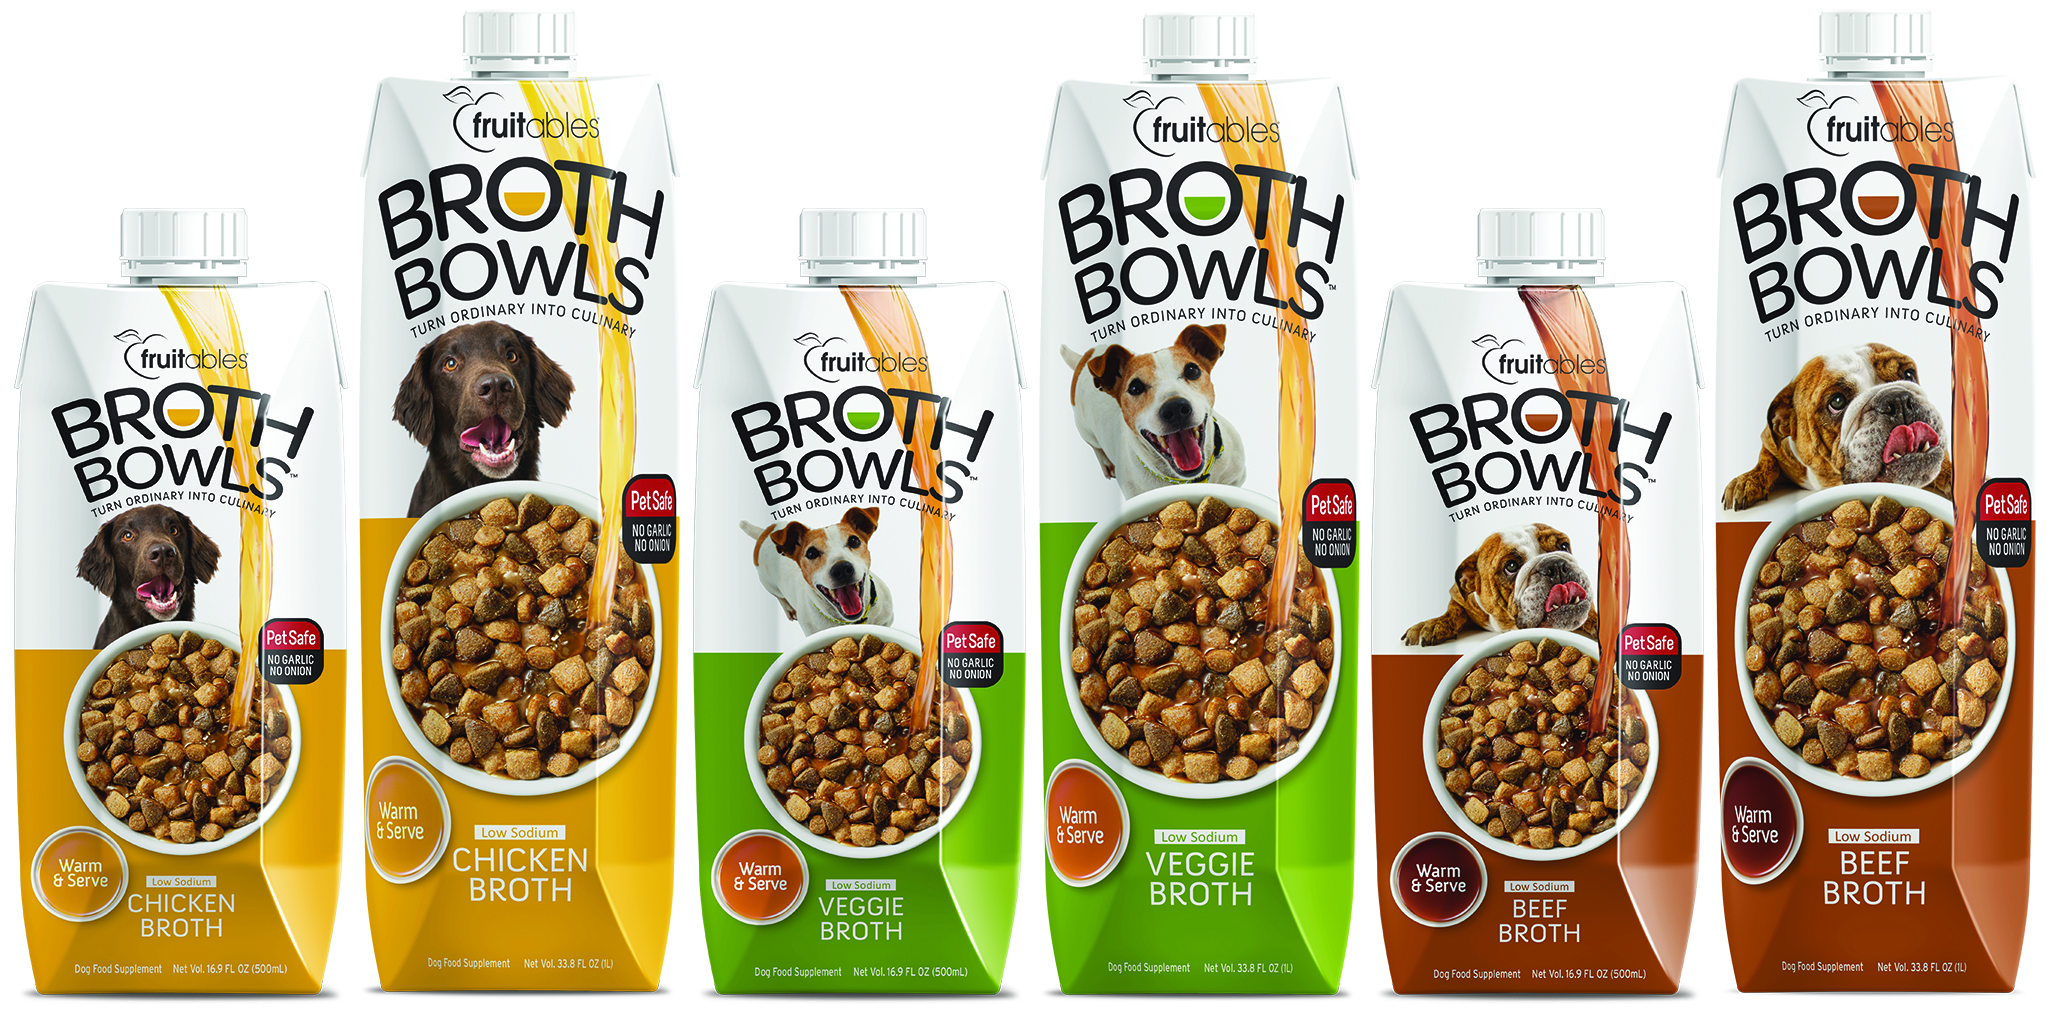 Broth_Bowls_Family_View.jpg